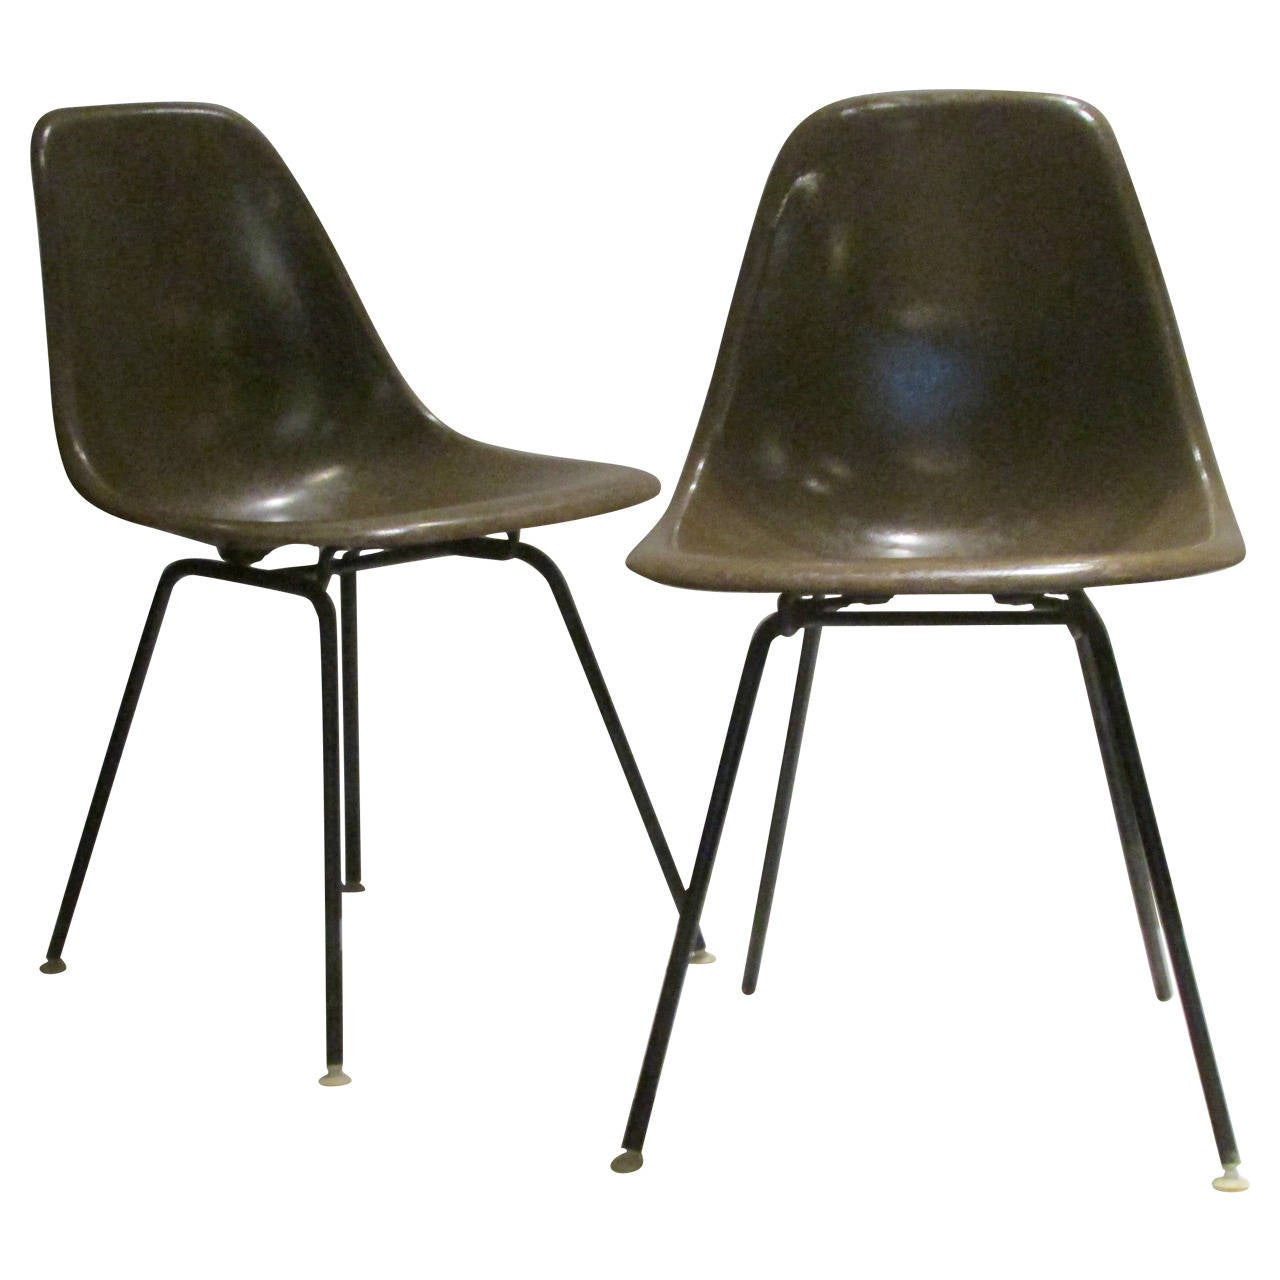 early eames for herman miller seal brown fiberglass chairs at 1stdibs. Black Bedroom Furniture Sets. Home Design Ideas